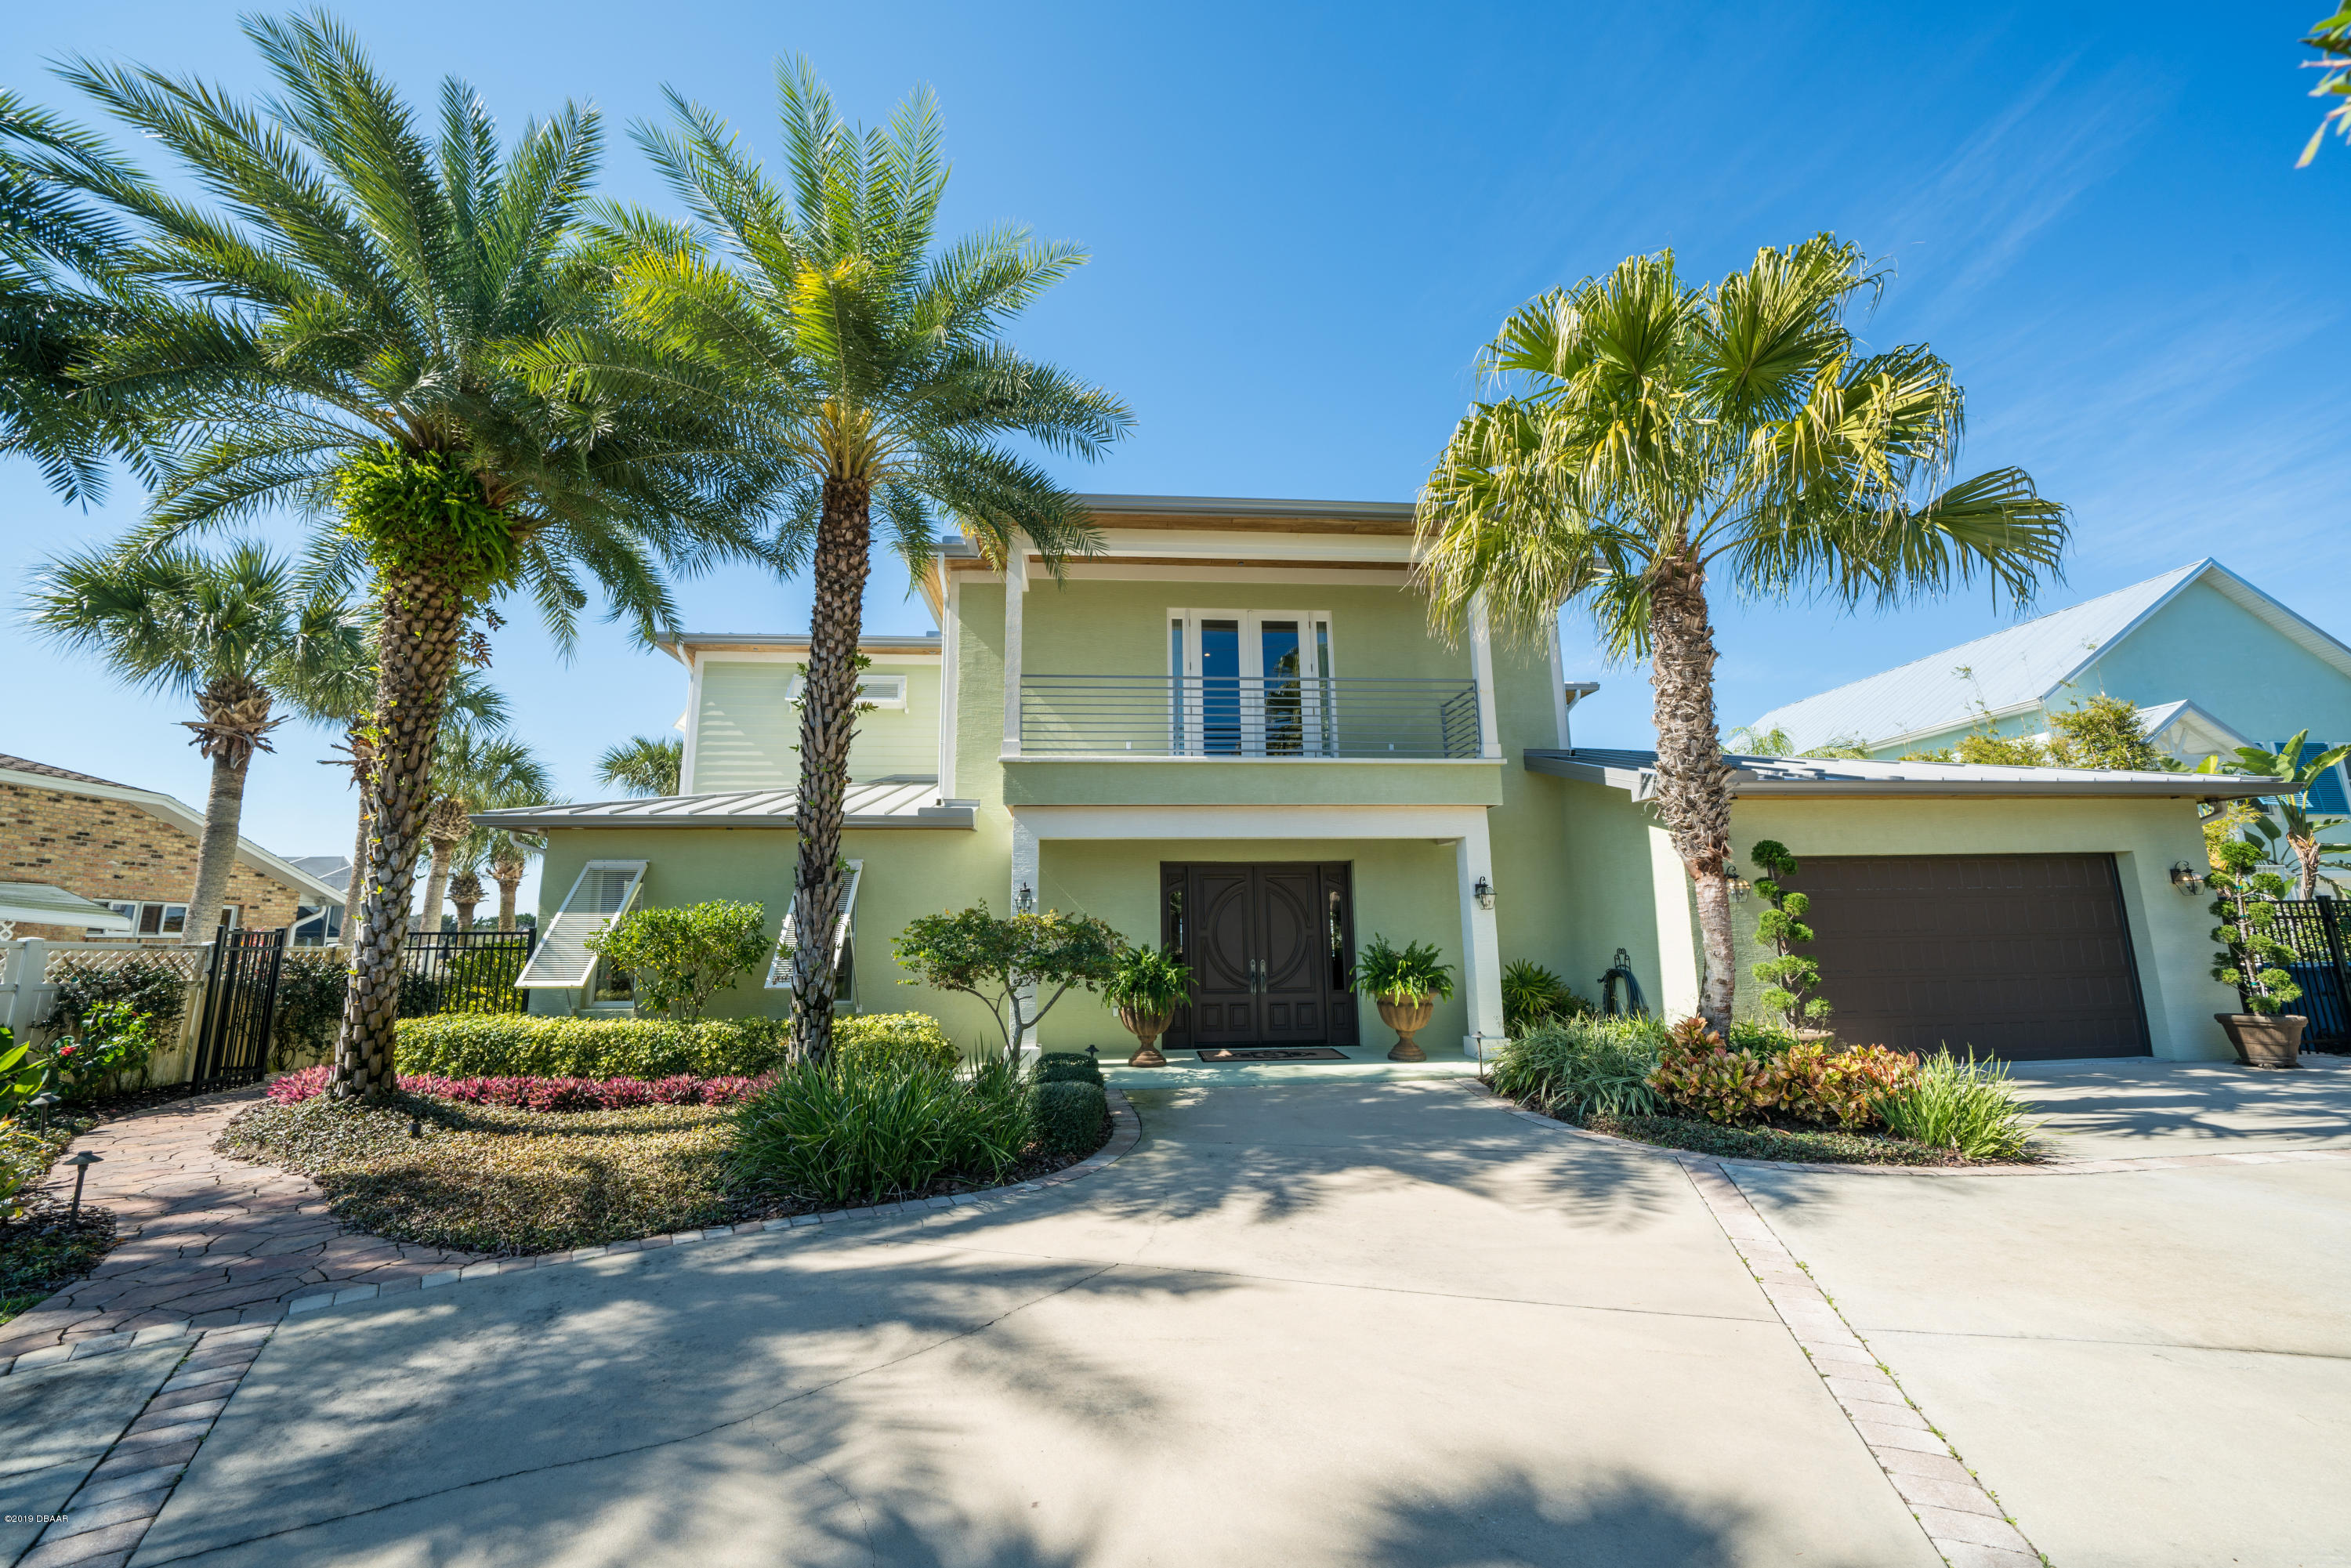 3100 John Anderson Drive, Ormond-By-The-Sea, Florida